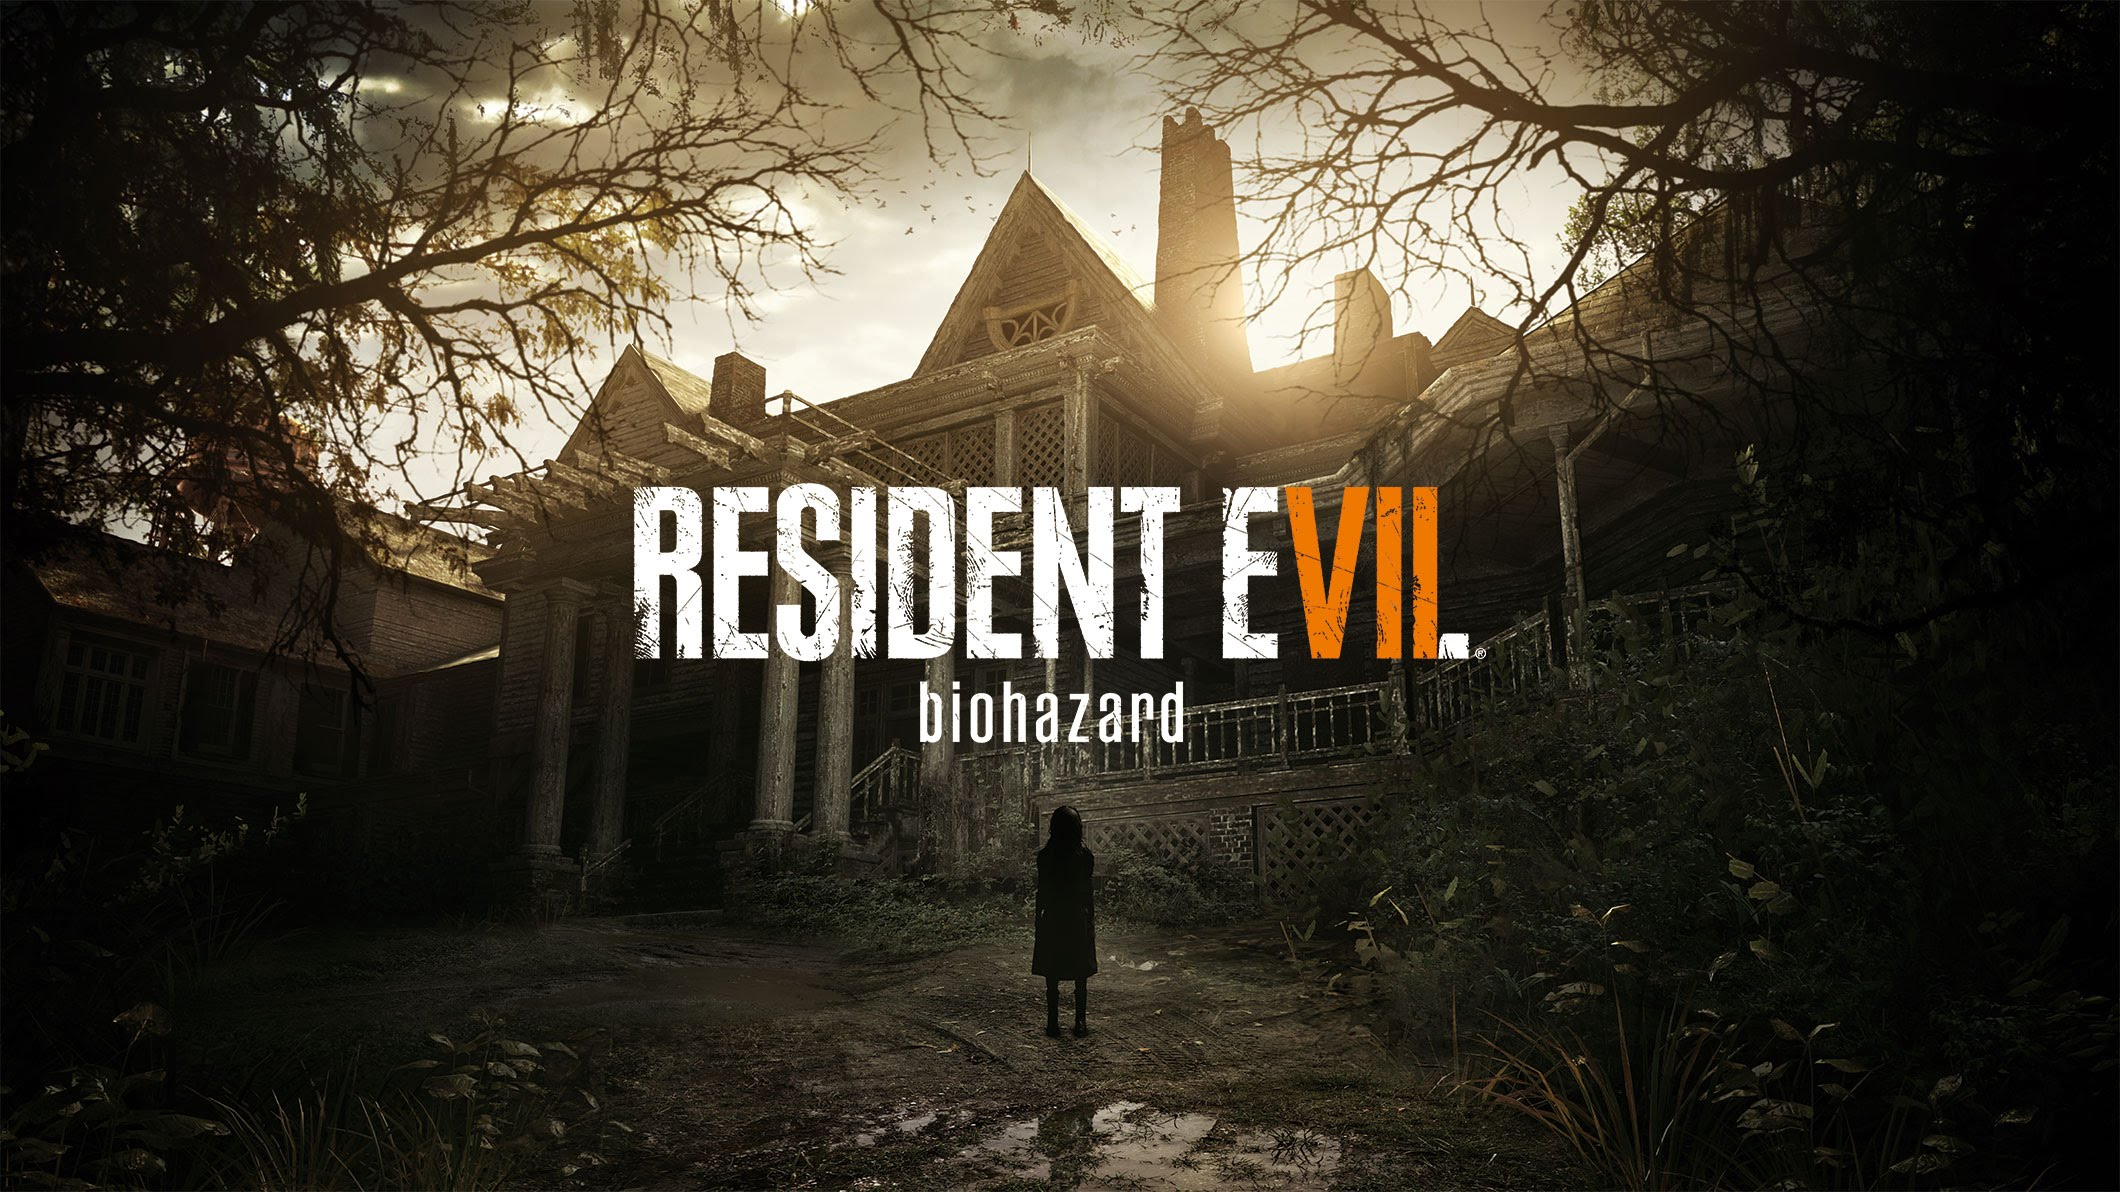 The Latest Resident Evil 7 Trailer Gives Us a Nightmarish Glimpse Into Gameplay